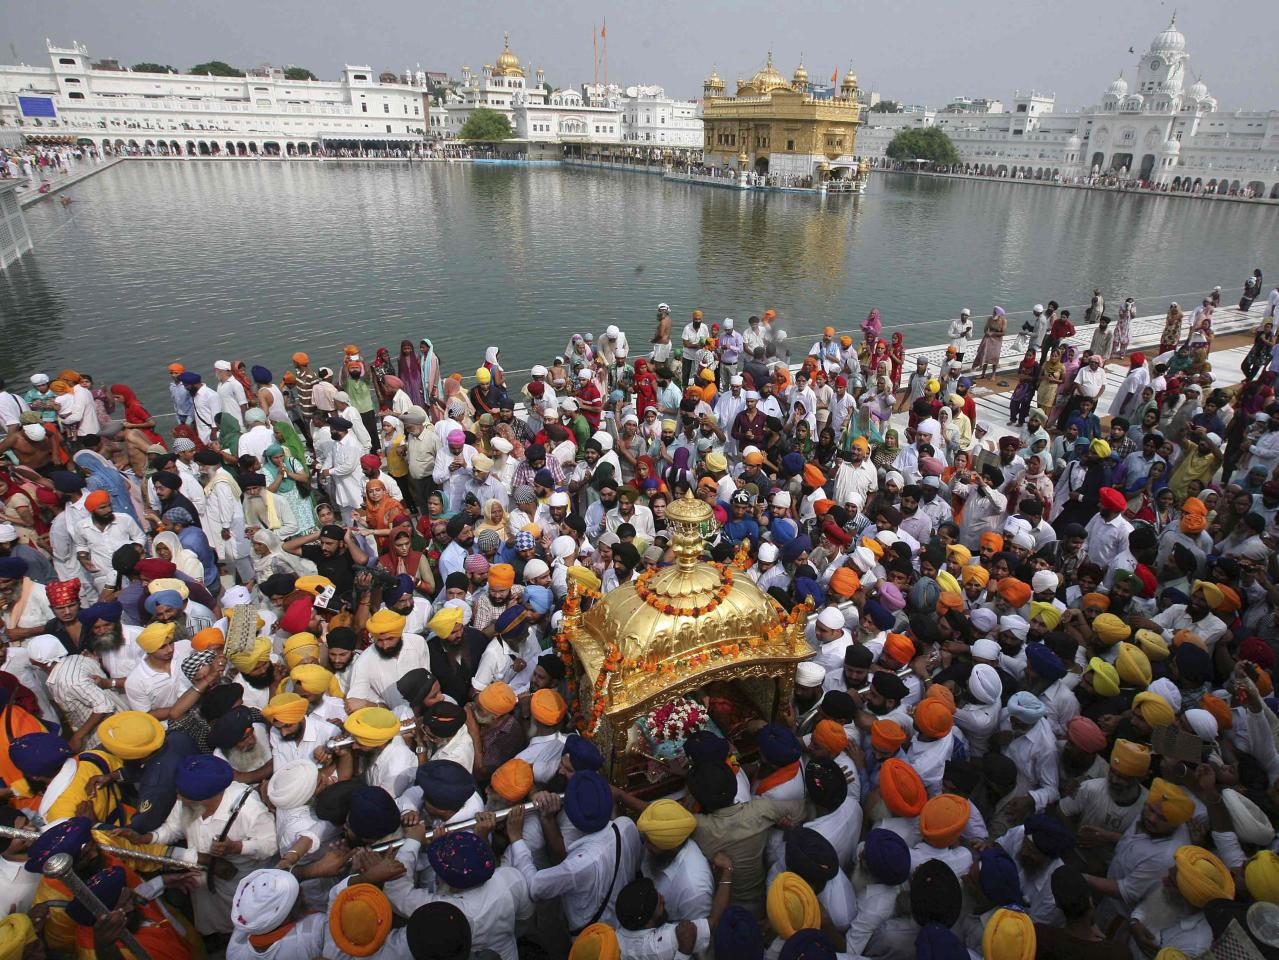 Sikh devotees carry their holy book Guru Granth Sahib in a palanquin during a religious procession inside the premises of the Golden Temple in the northern Indian city of Amritsar September 1, 2013. The procession was carried out to celebrate the 409th anniversary of the installation of the Guru Granth Sahib, the religious book of Sikhs. REUTERS/Munish Sharma (INDIA - Tags: RELIGION SOCIETY ANNIVERSARY)